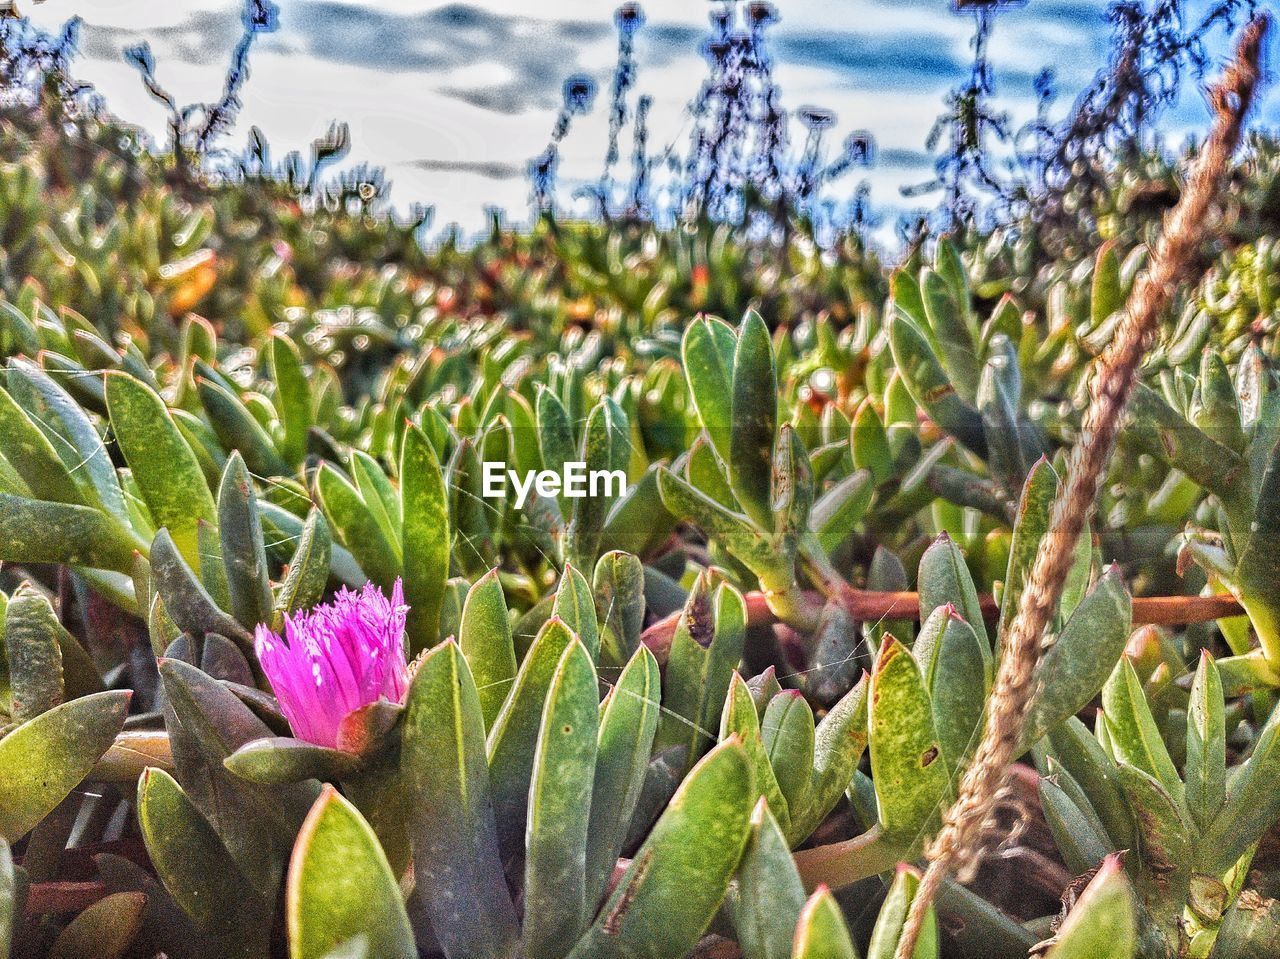 growth, plant, beauty in nature, green color, nature, day, close-up, focus on foreground, leaf, no people, plant part, succulent plant, field, flower, land, sunlight, selective focus, freshness, cactus, flowering plant, outdoors, purple